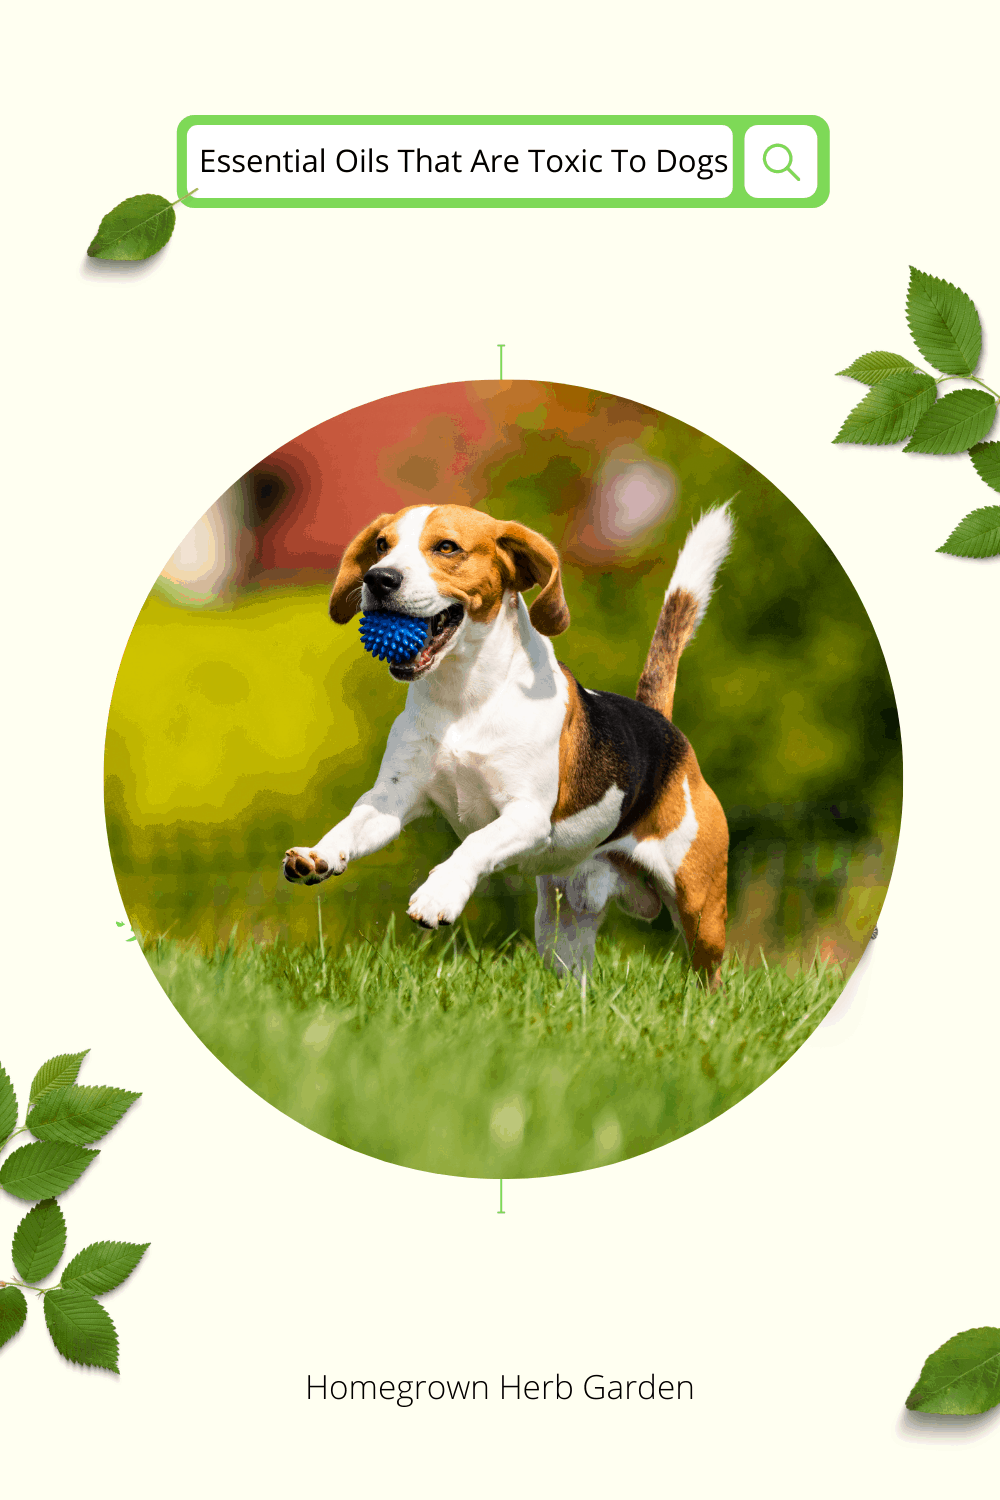 essential oils that are toxic to dogs